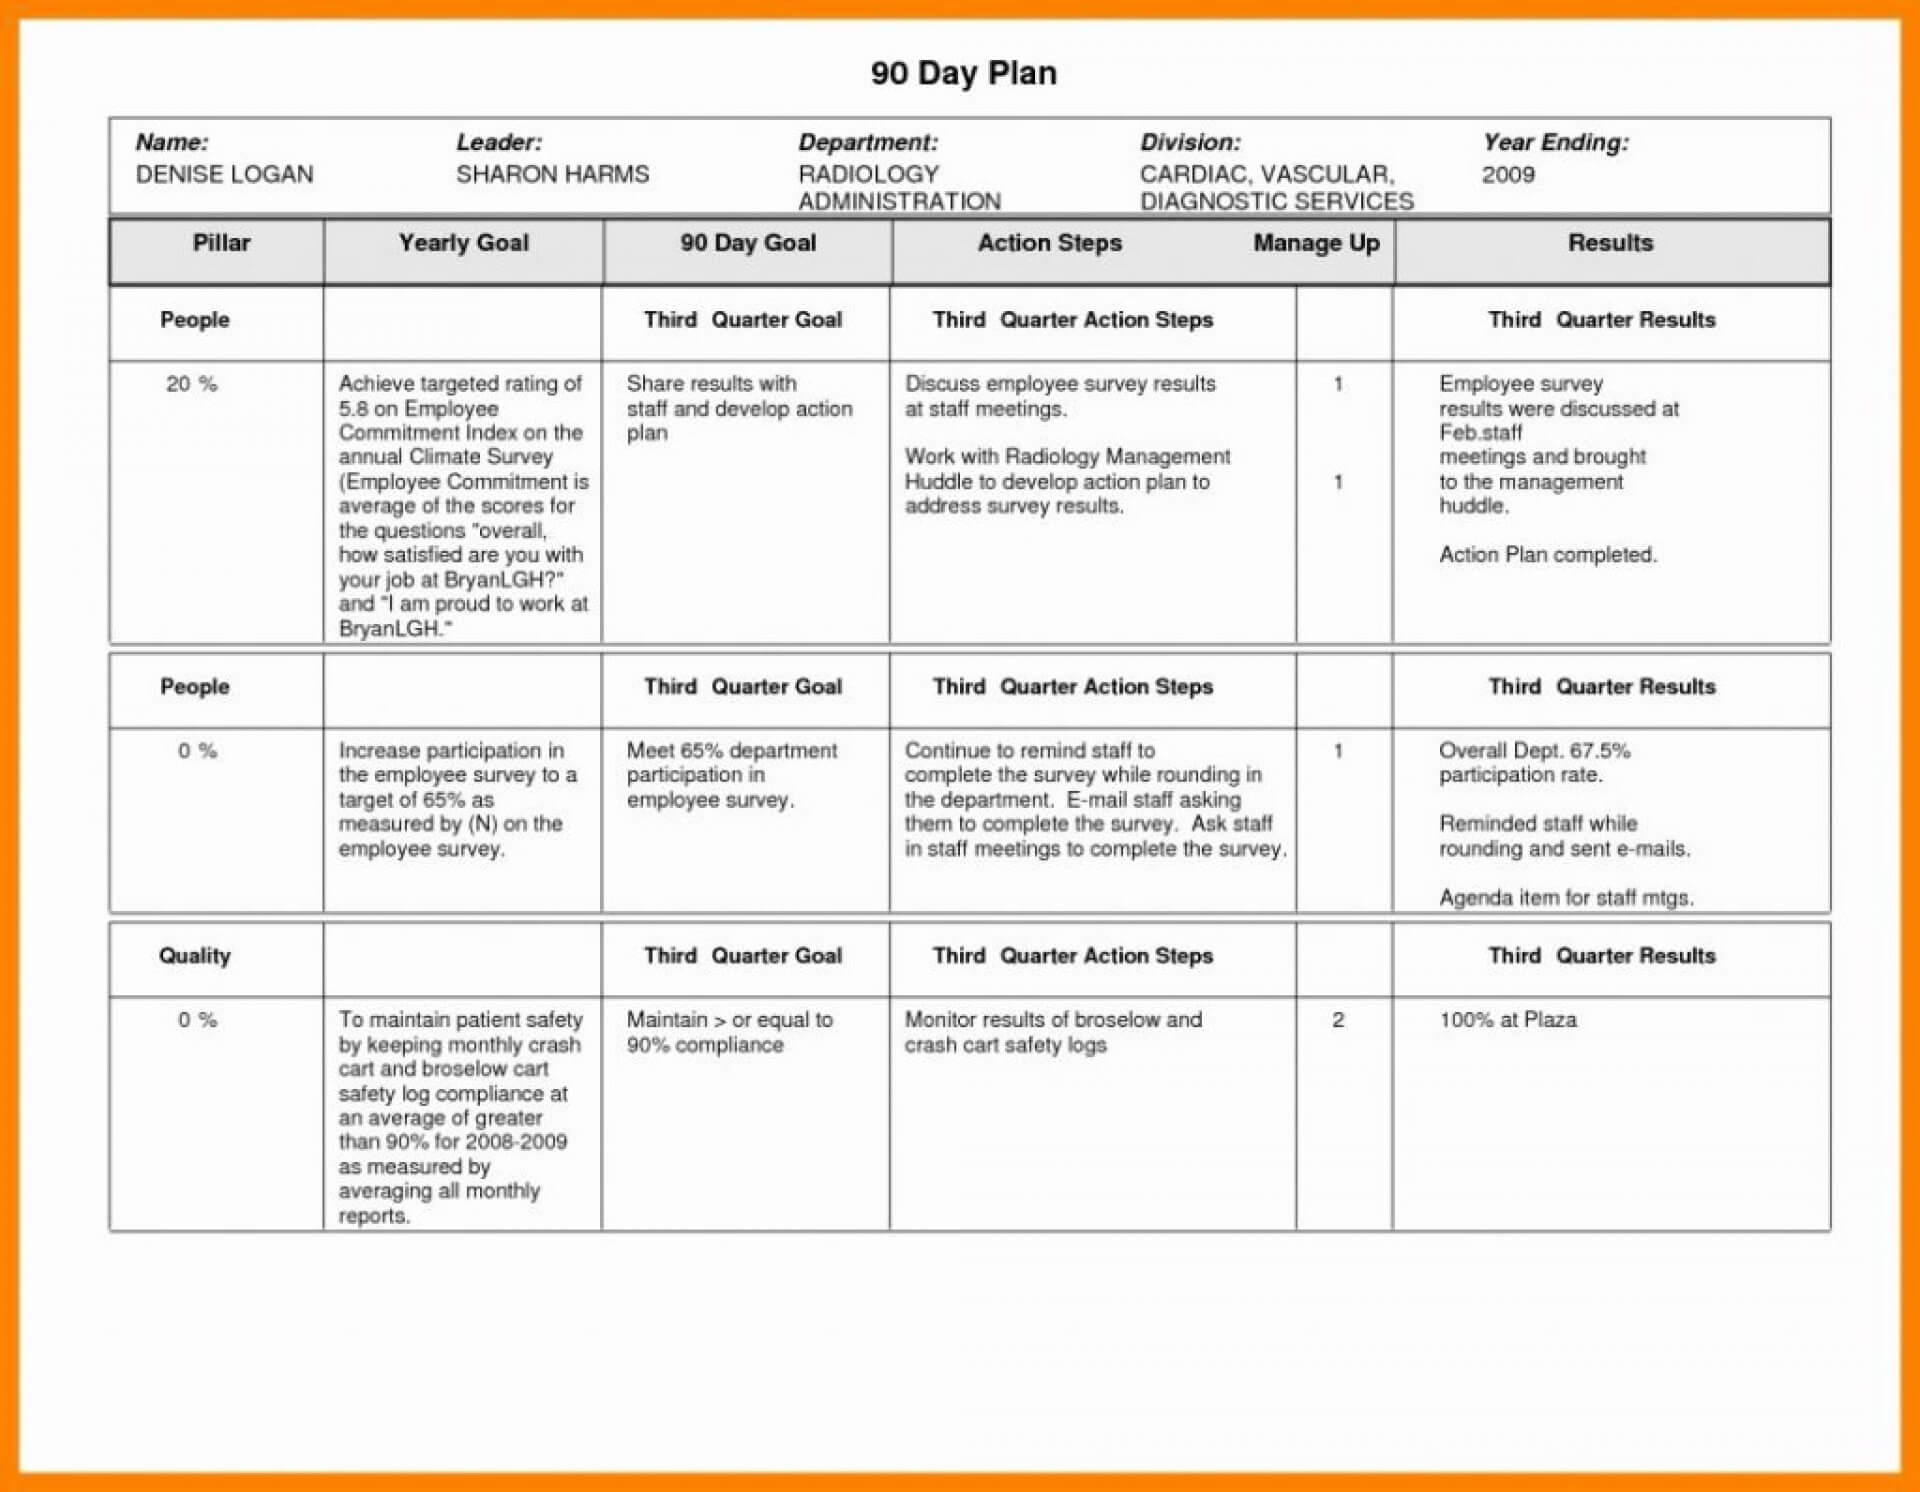 026 Template Ideas 30 60 90 Action Plan 788X1021 Stirring Throughout 30 60 90 Day Plan Template Word